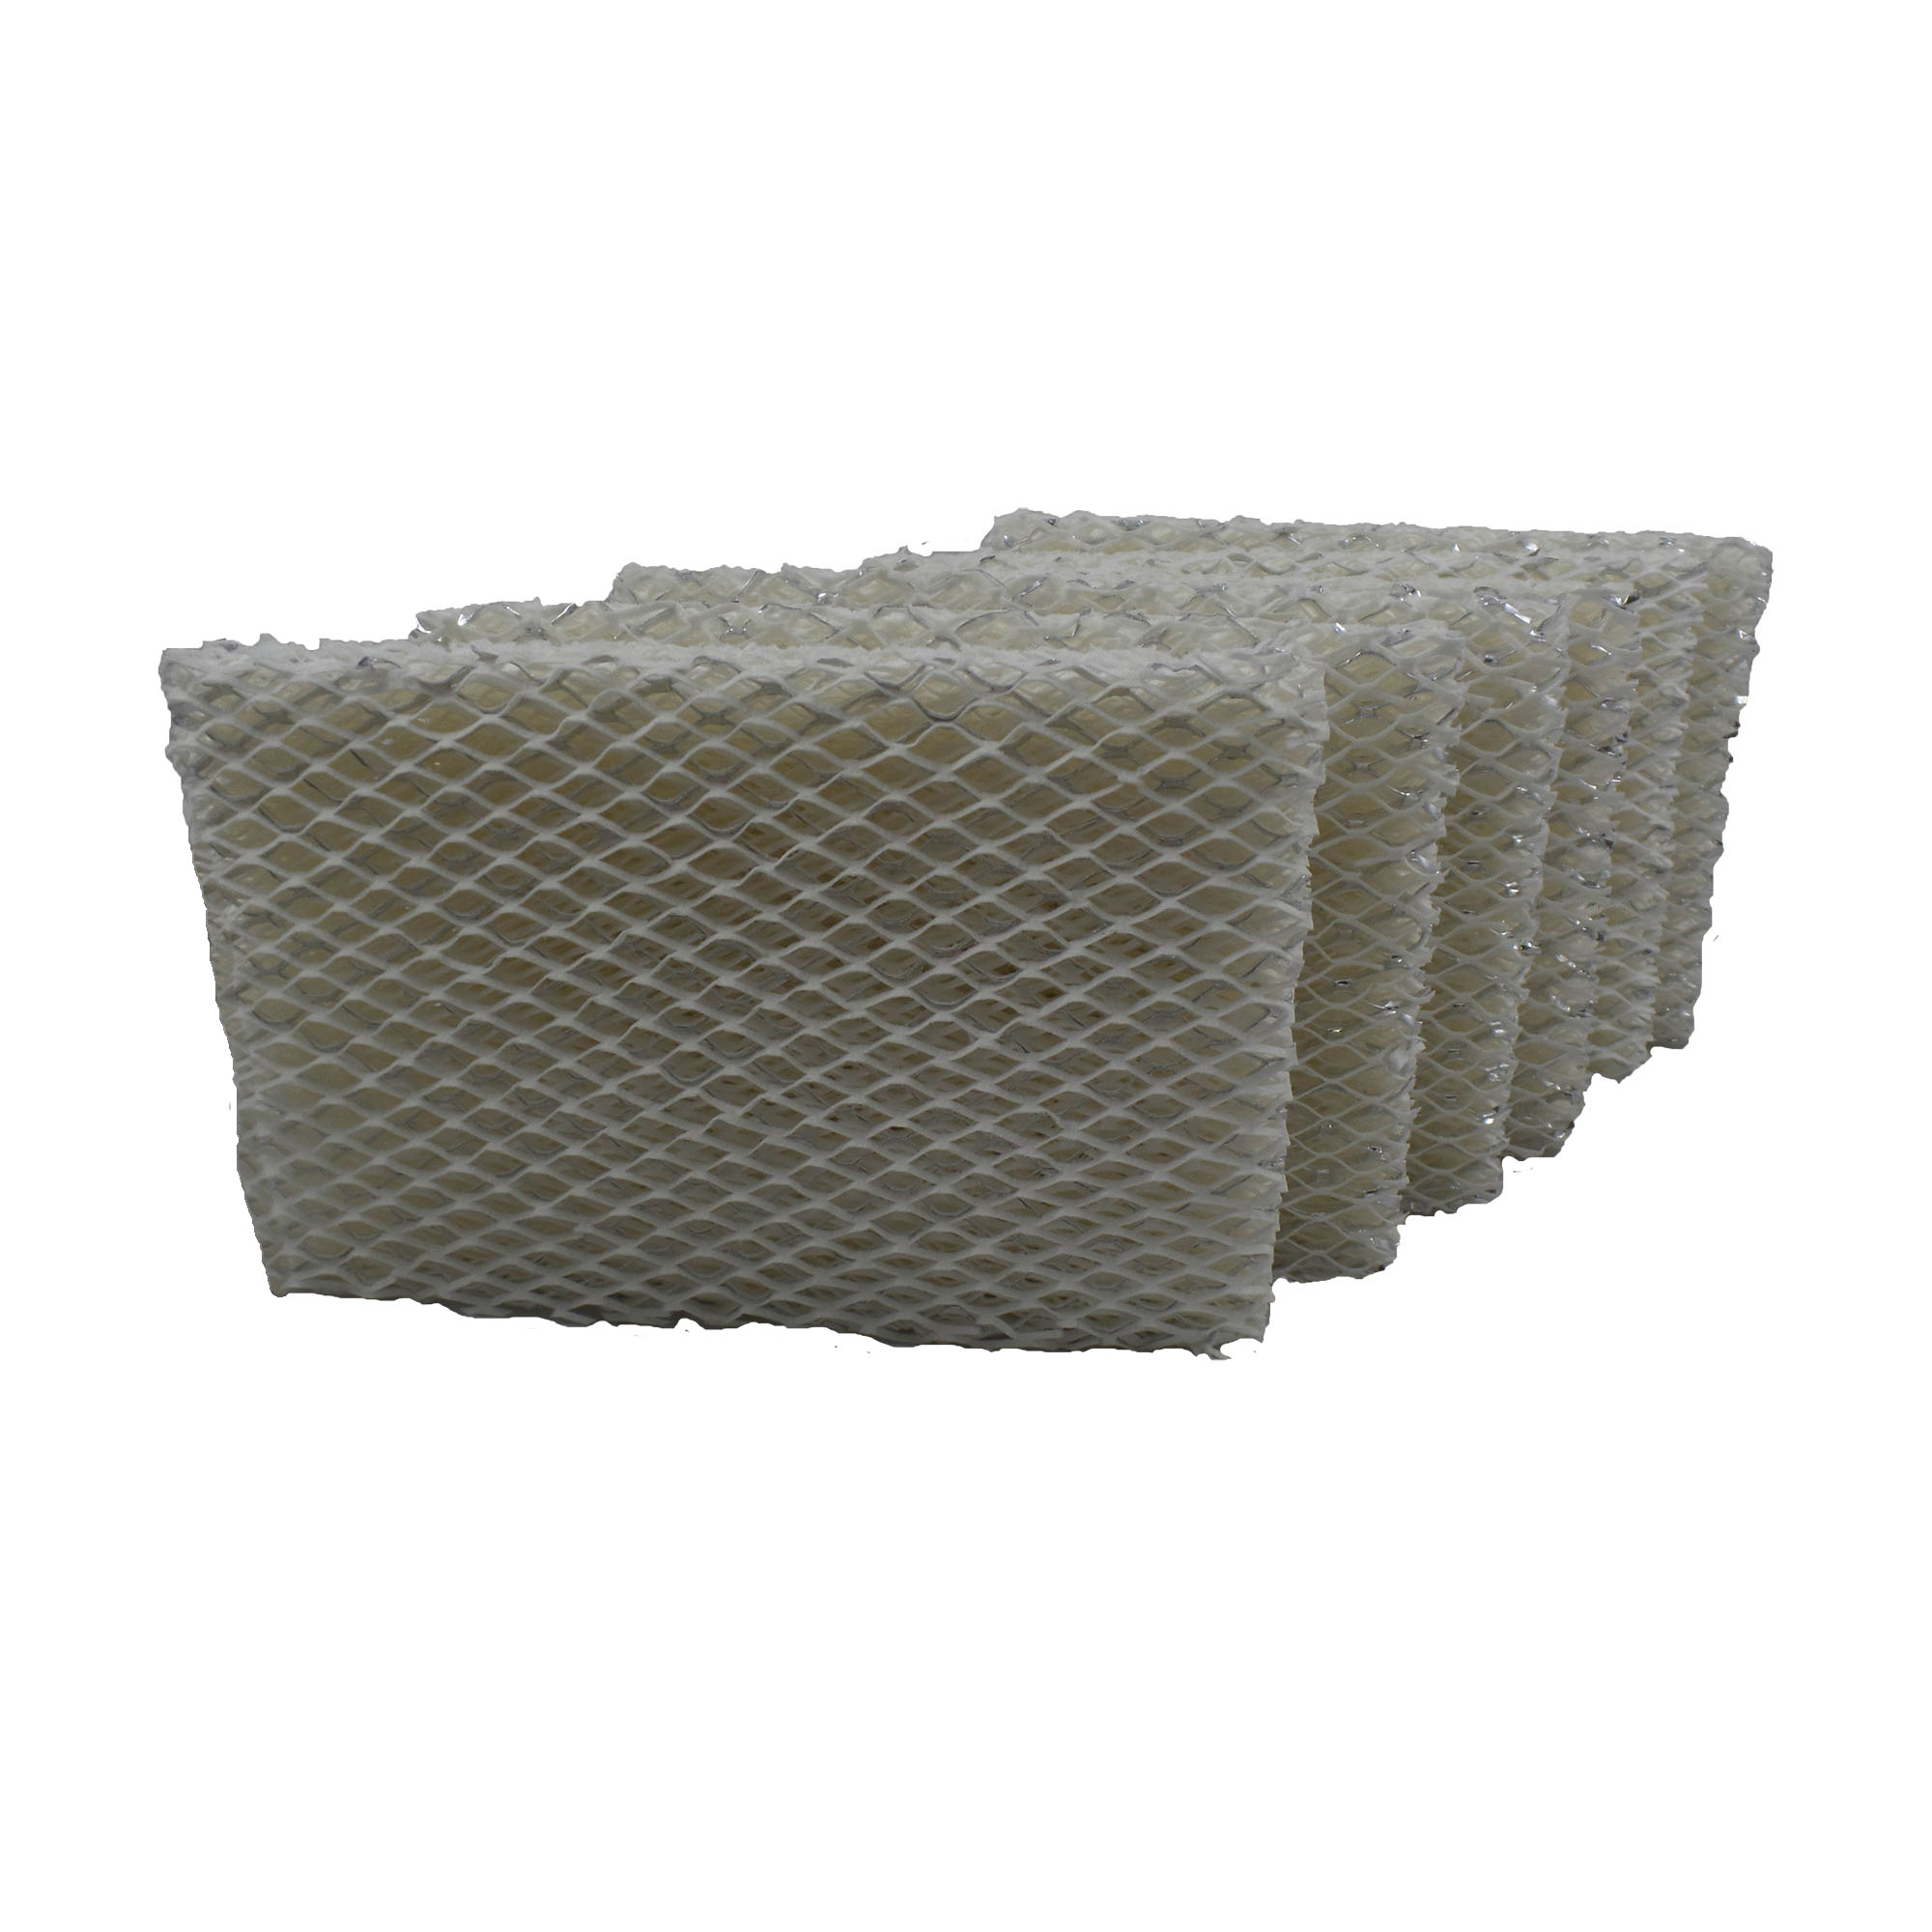 6 PACK Holmes HM630, HM729, HM729G, HM7207, HM7808 Humidifier Filter Replacem...